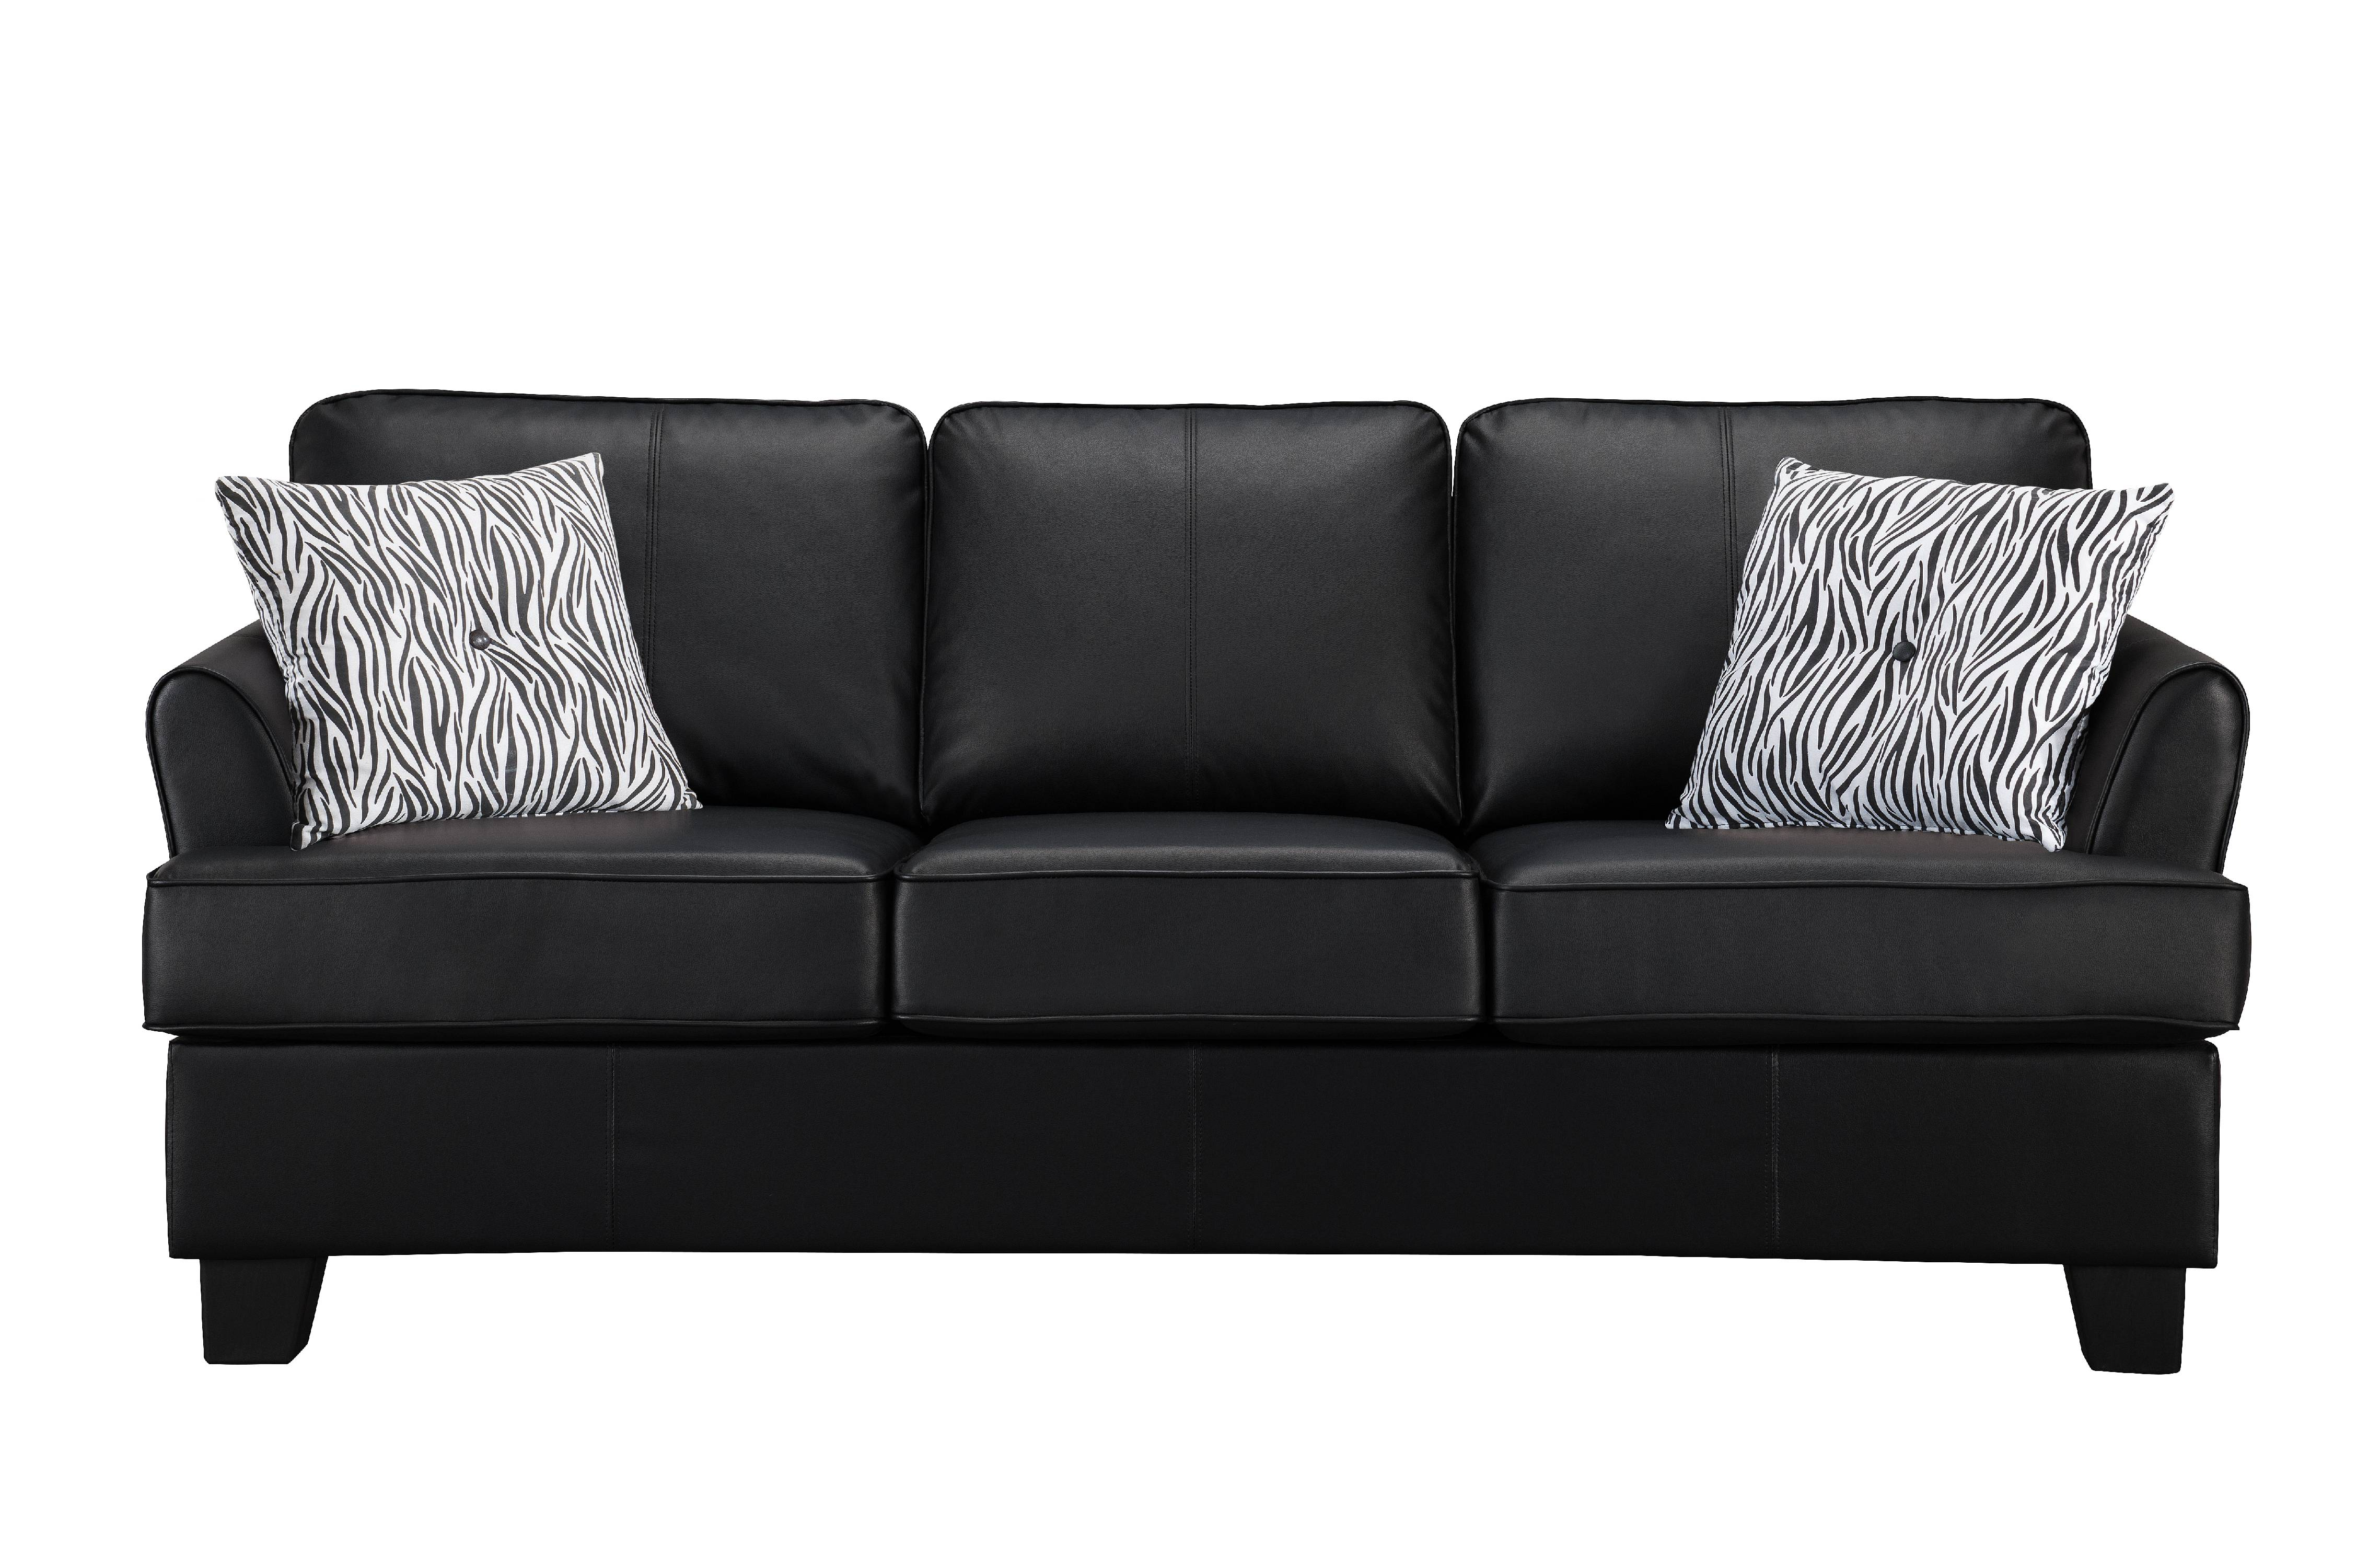 Chantal Black Faux Leather Queen Size Hide A Bed Sofa Sleeper